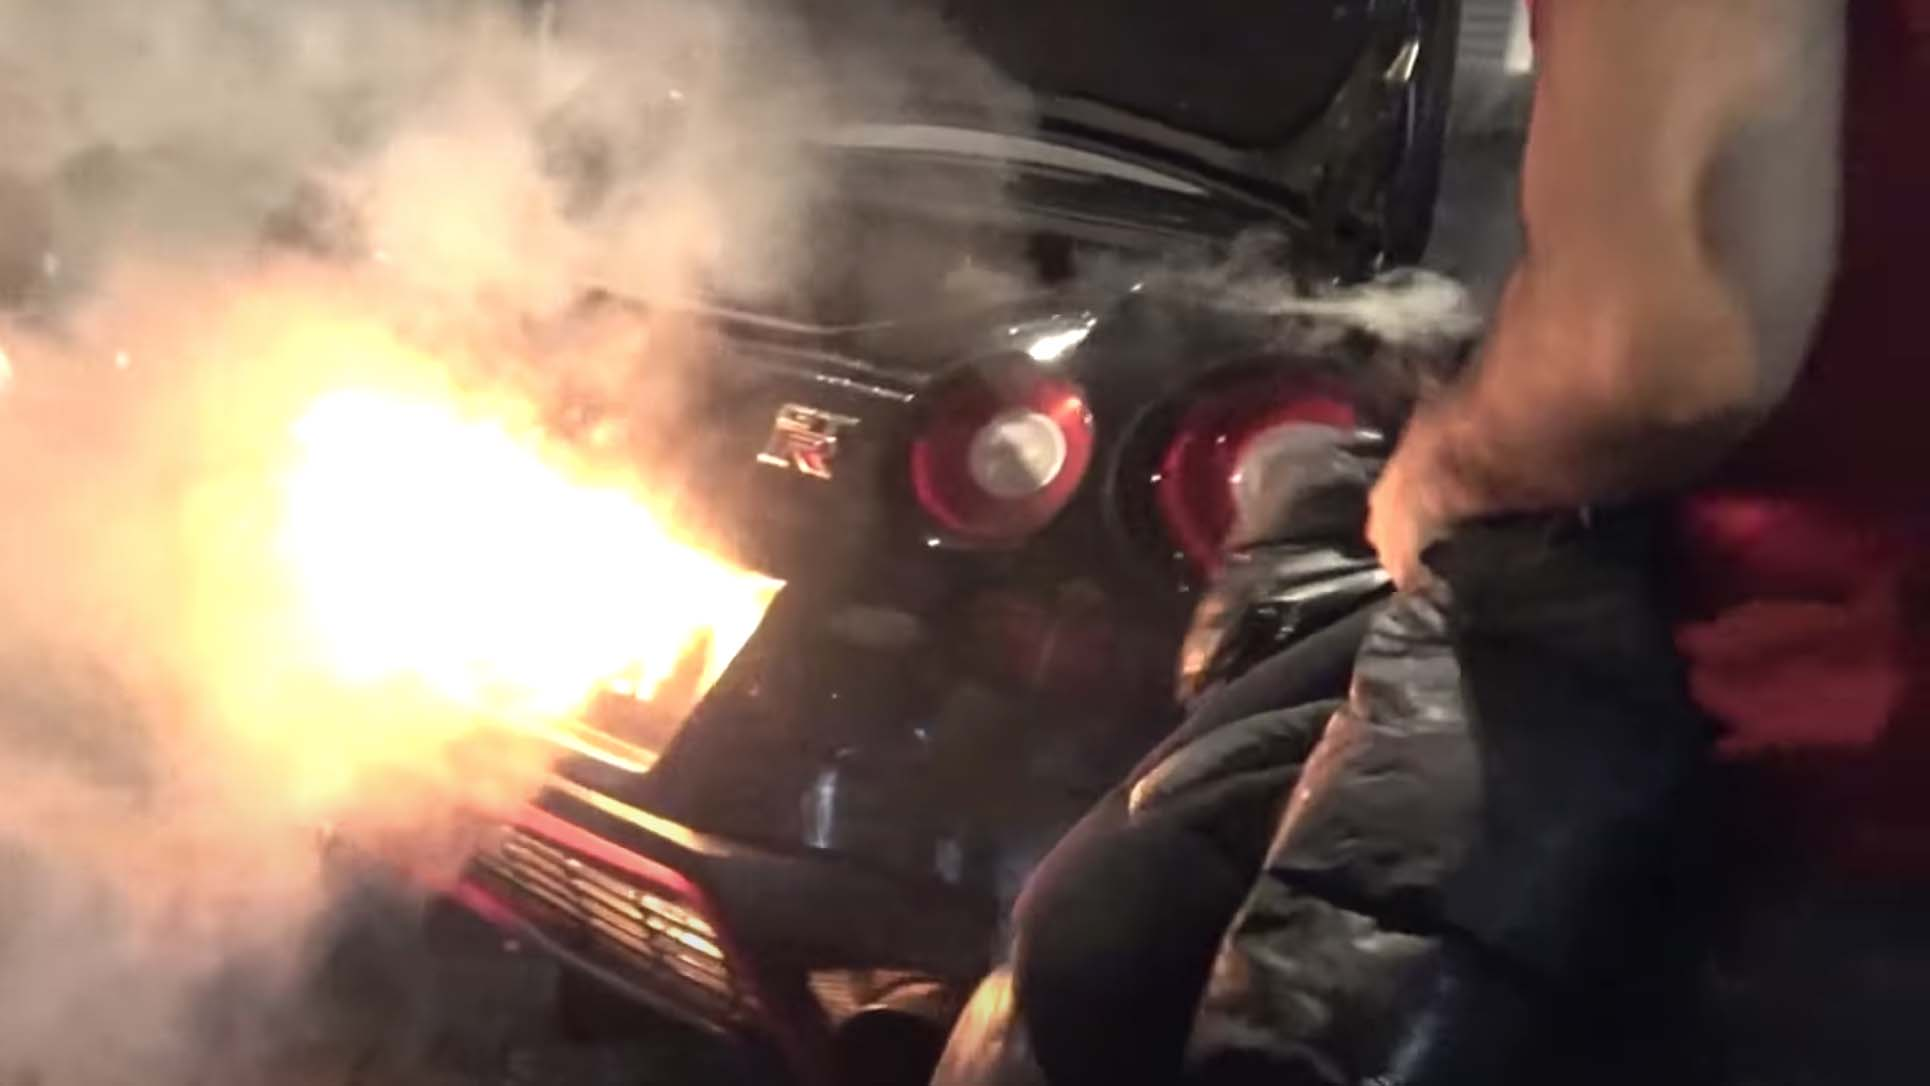 Nissan GTR Goes up in flames